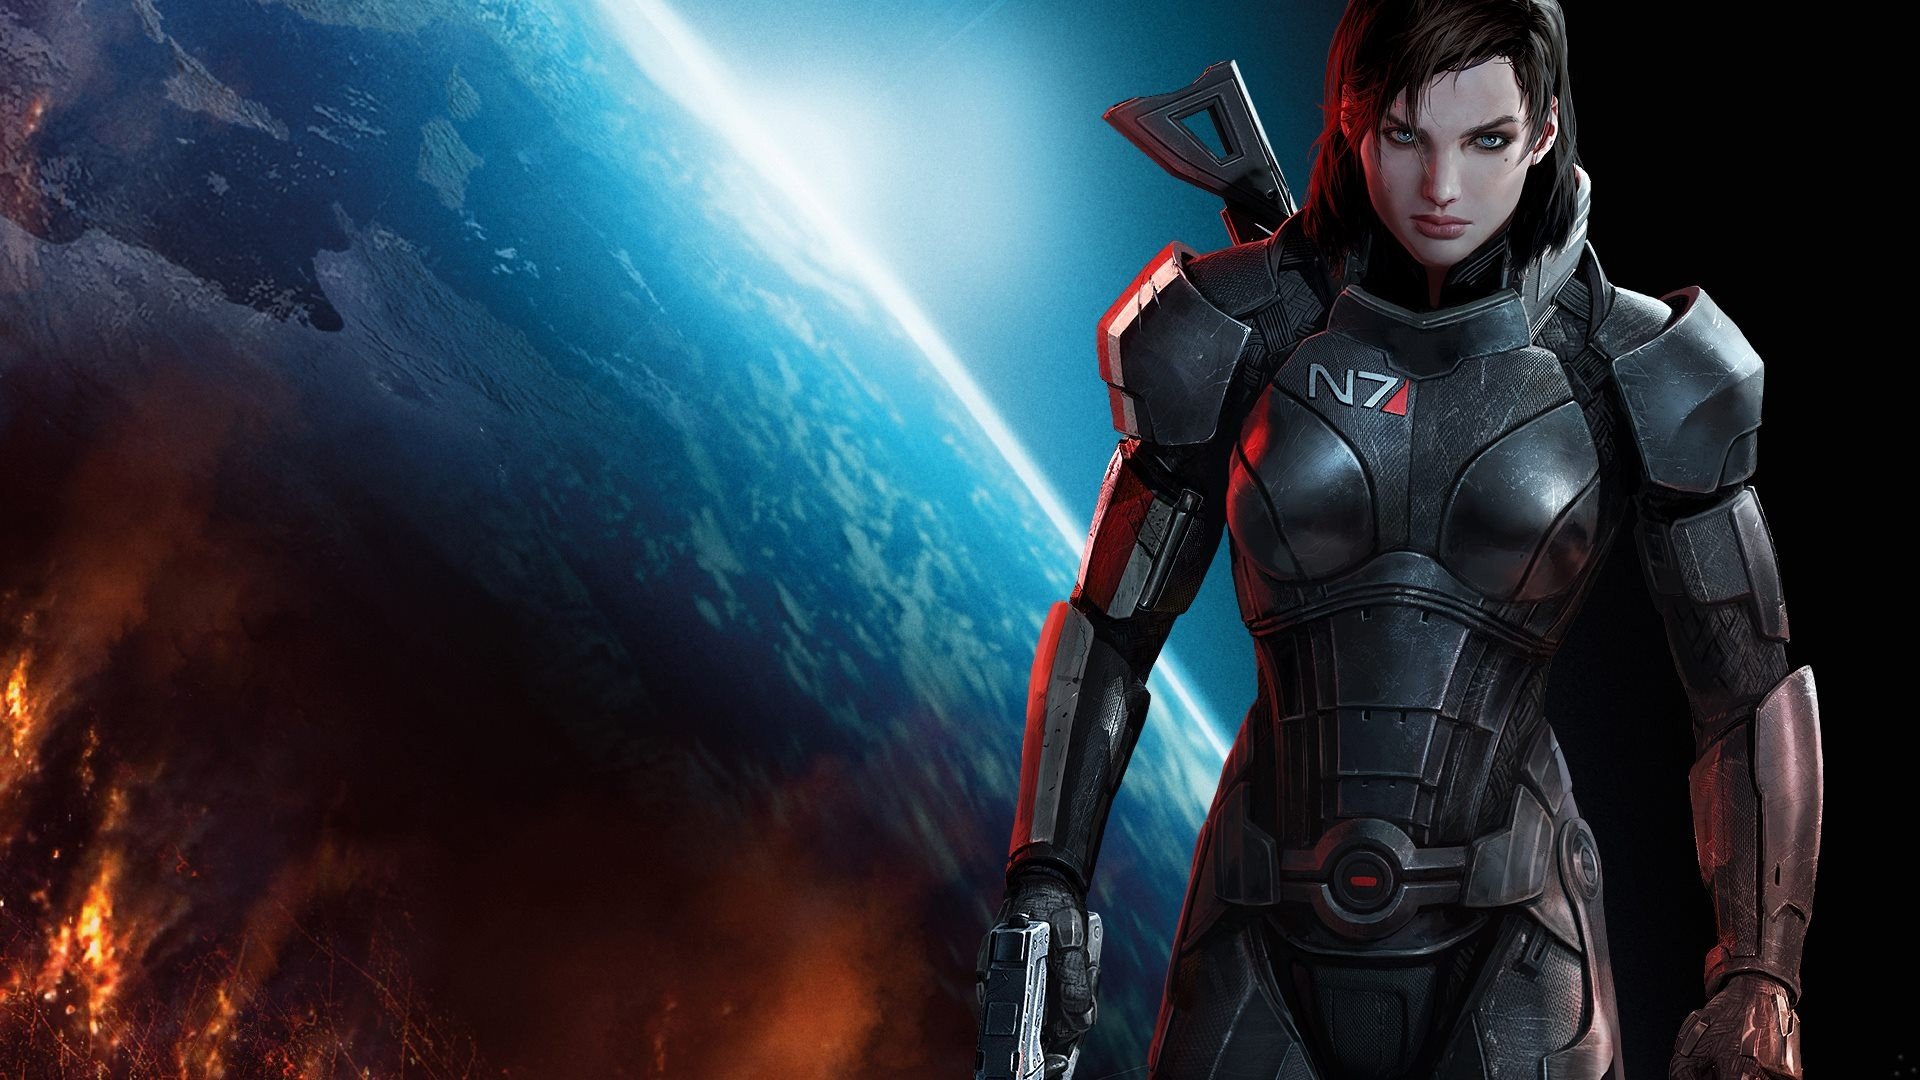 http://masseffectuniverse.fr/wp-content/gallery/wallpapers/wallpaper-jane-shepard.jpg